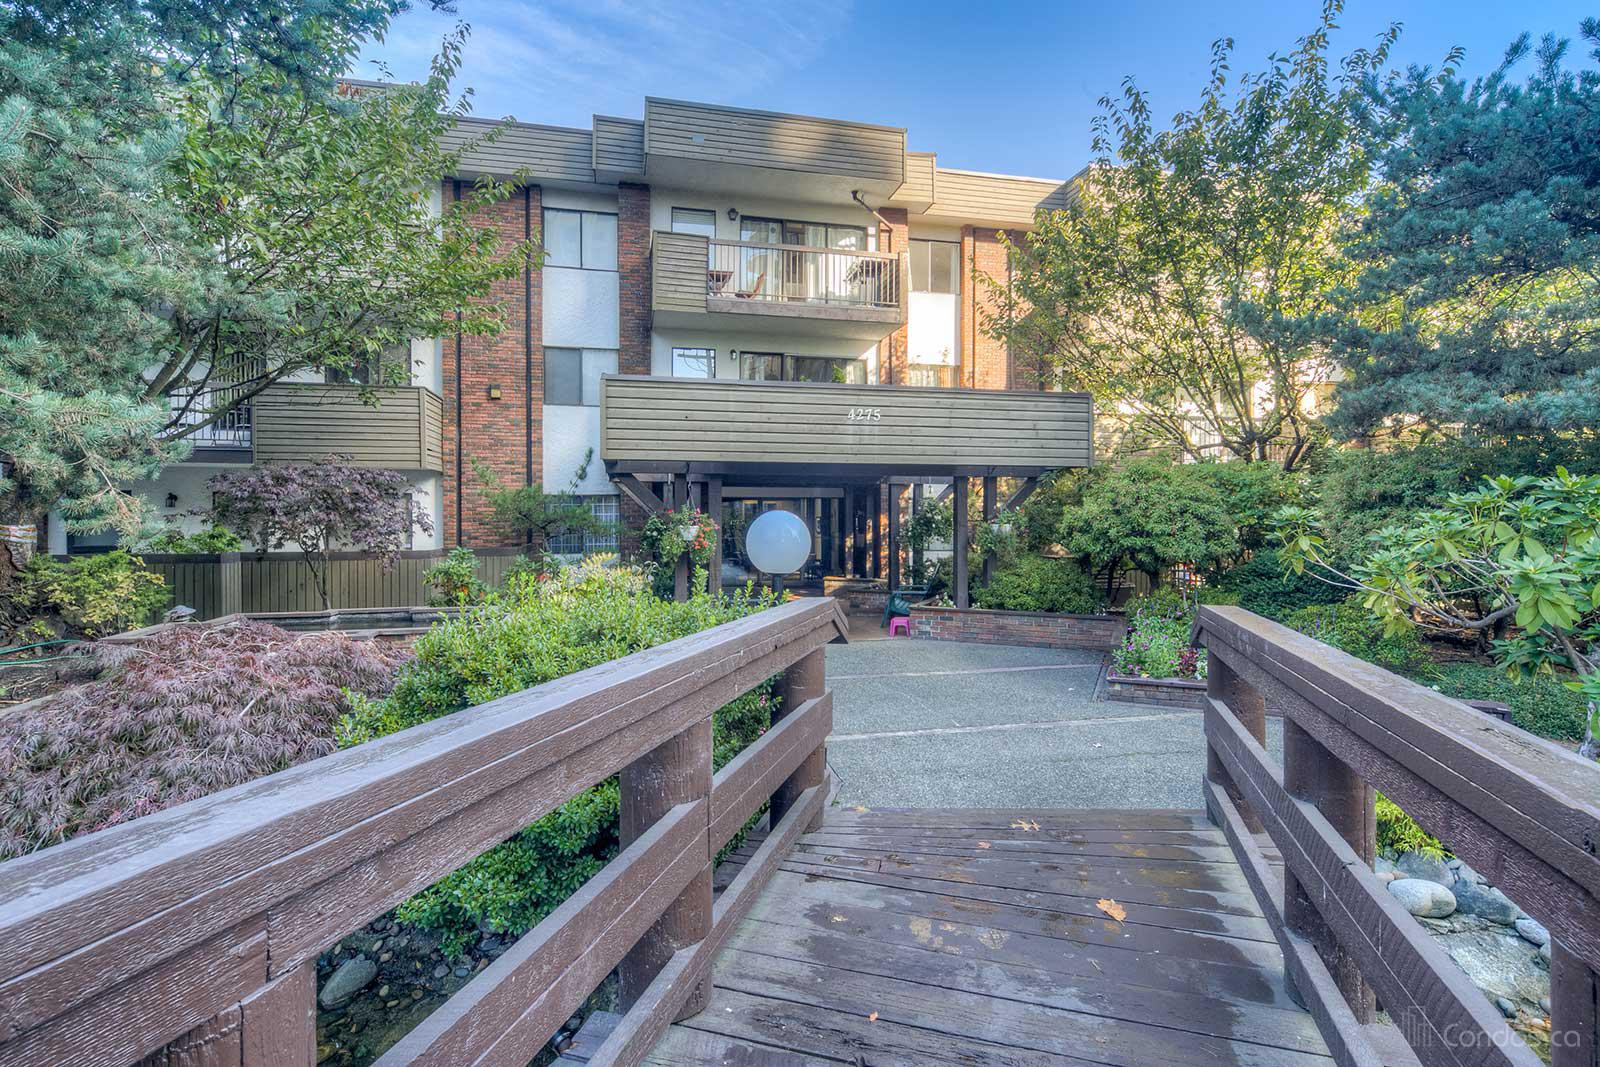 Orchard Square at 4275 Grange St, Burnaby 0